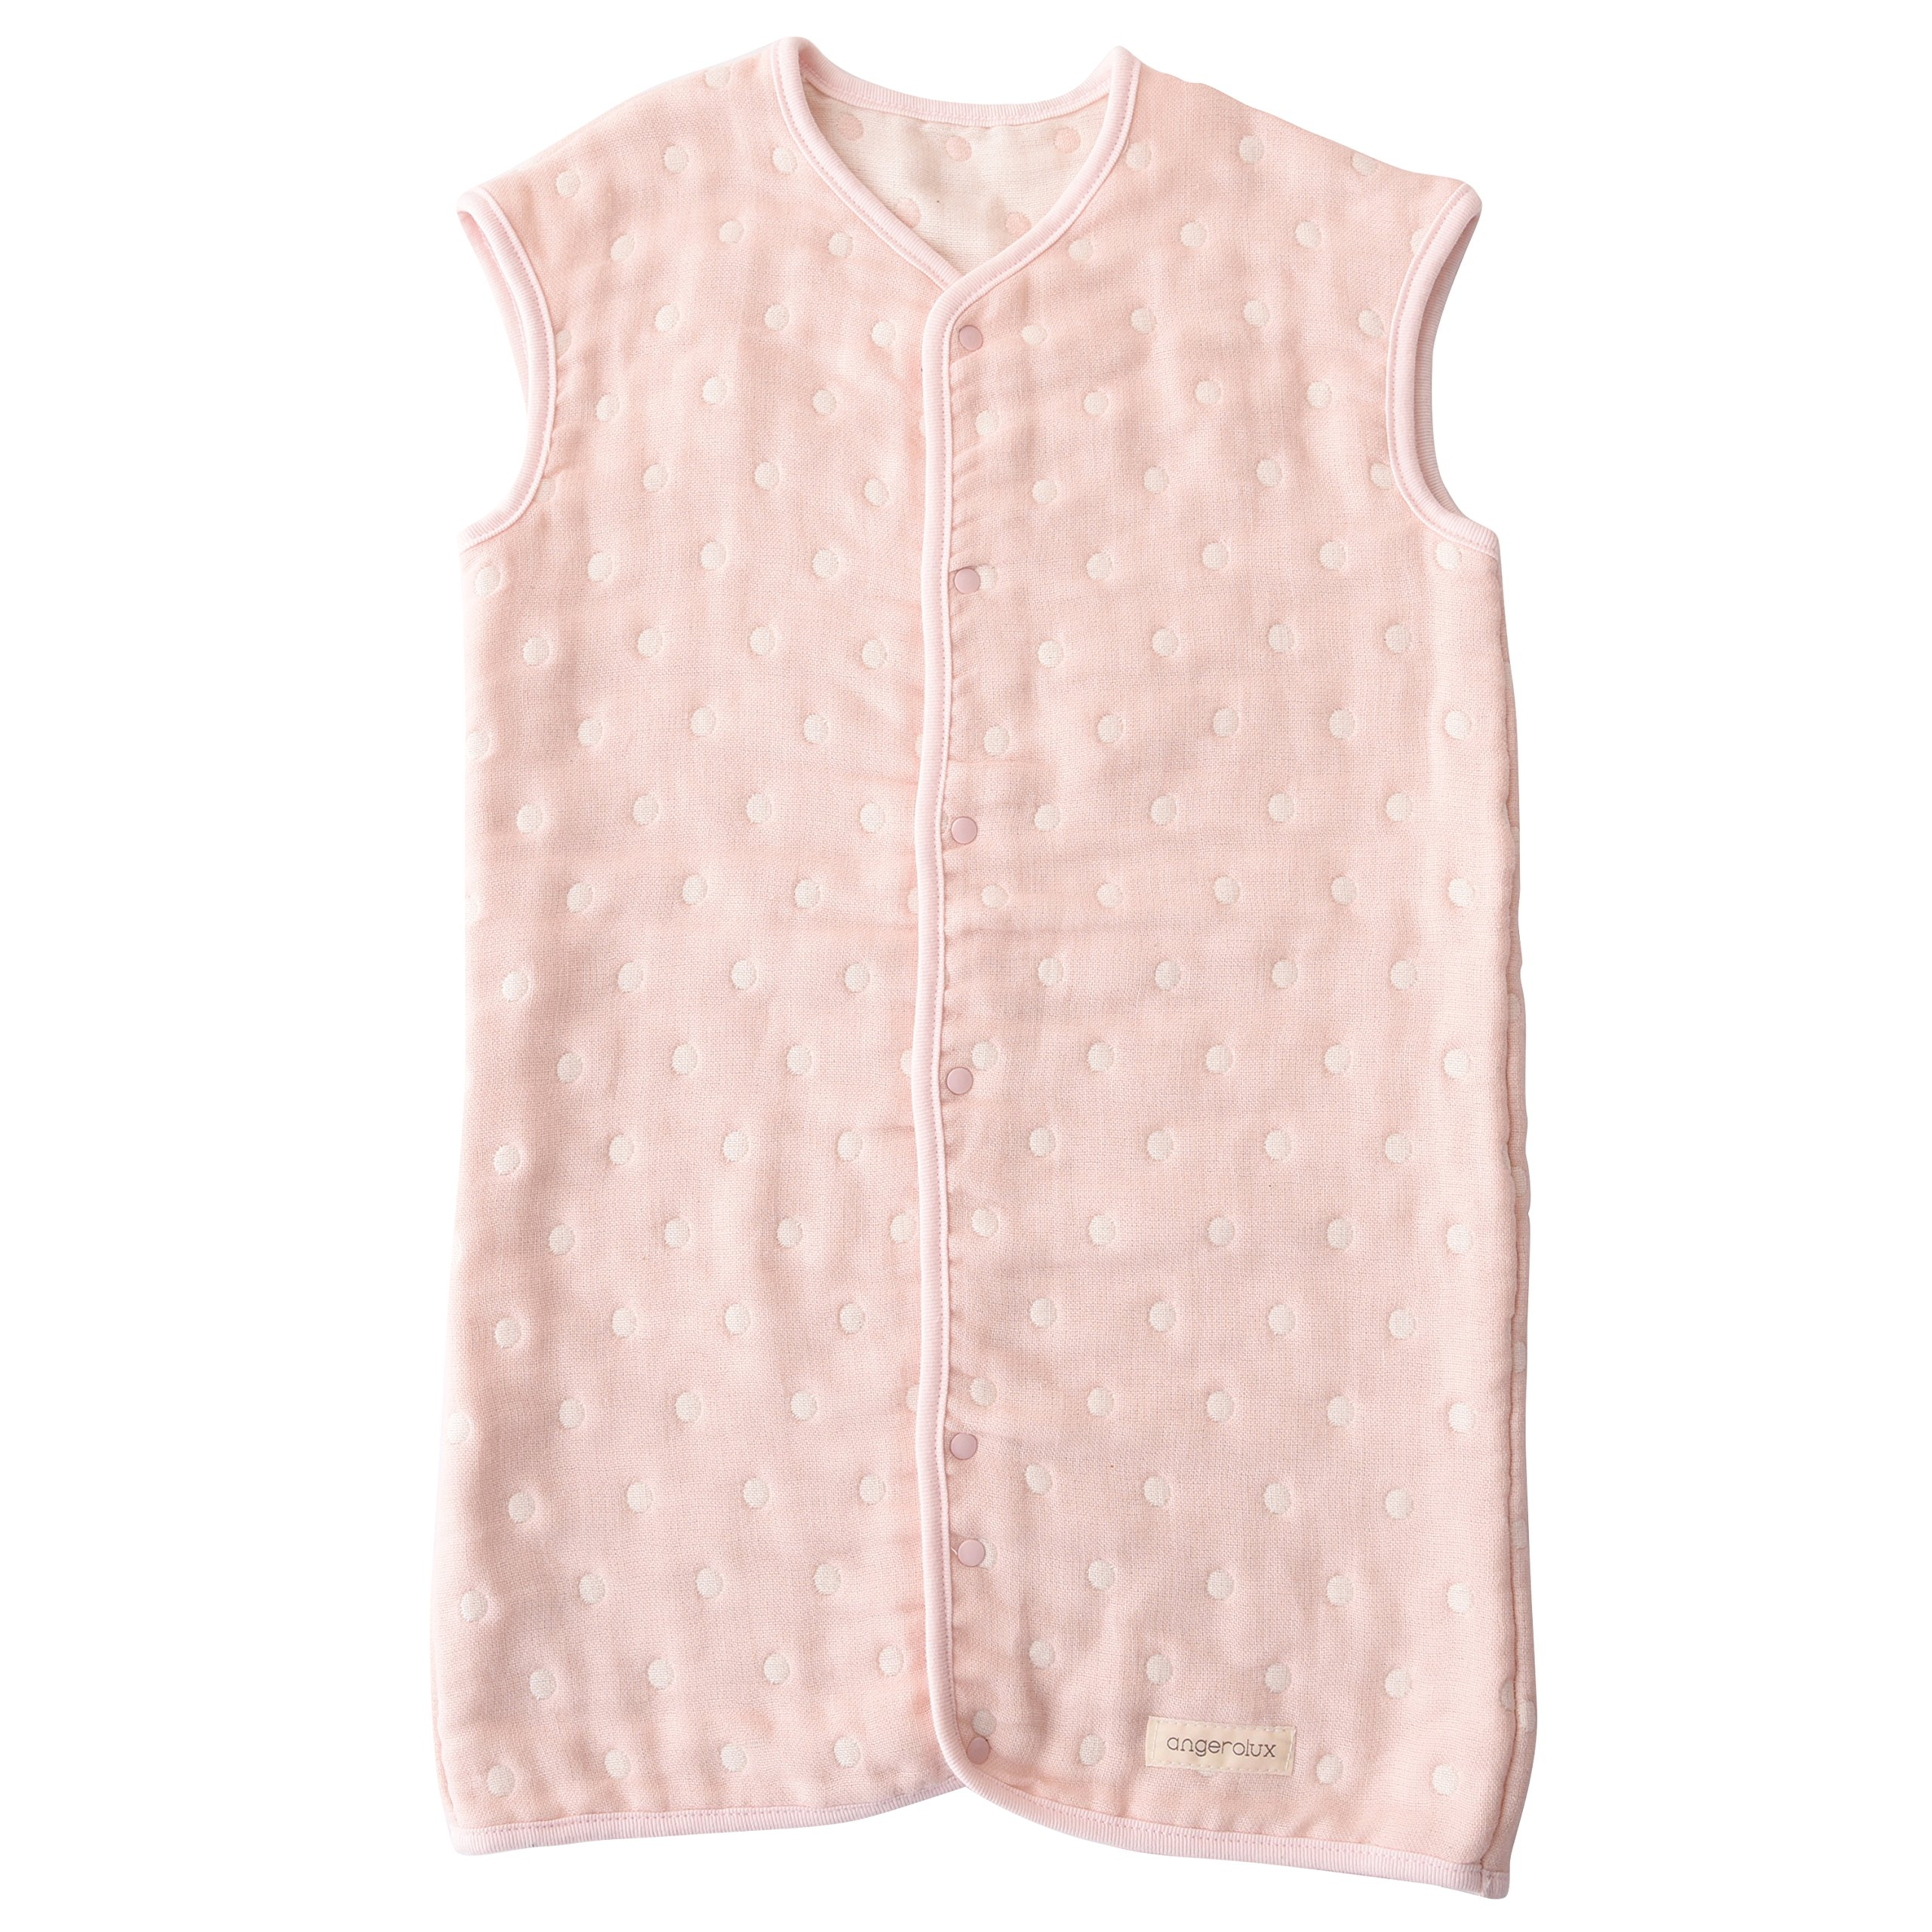 Angerolux 2way 6-layer gauze Sleeper 1 to 3-year old Pastel Pink Made in Japan